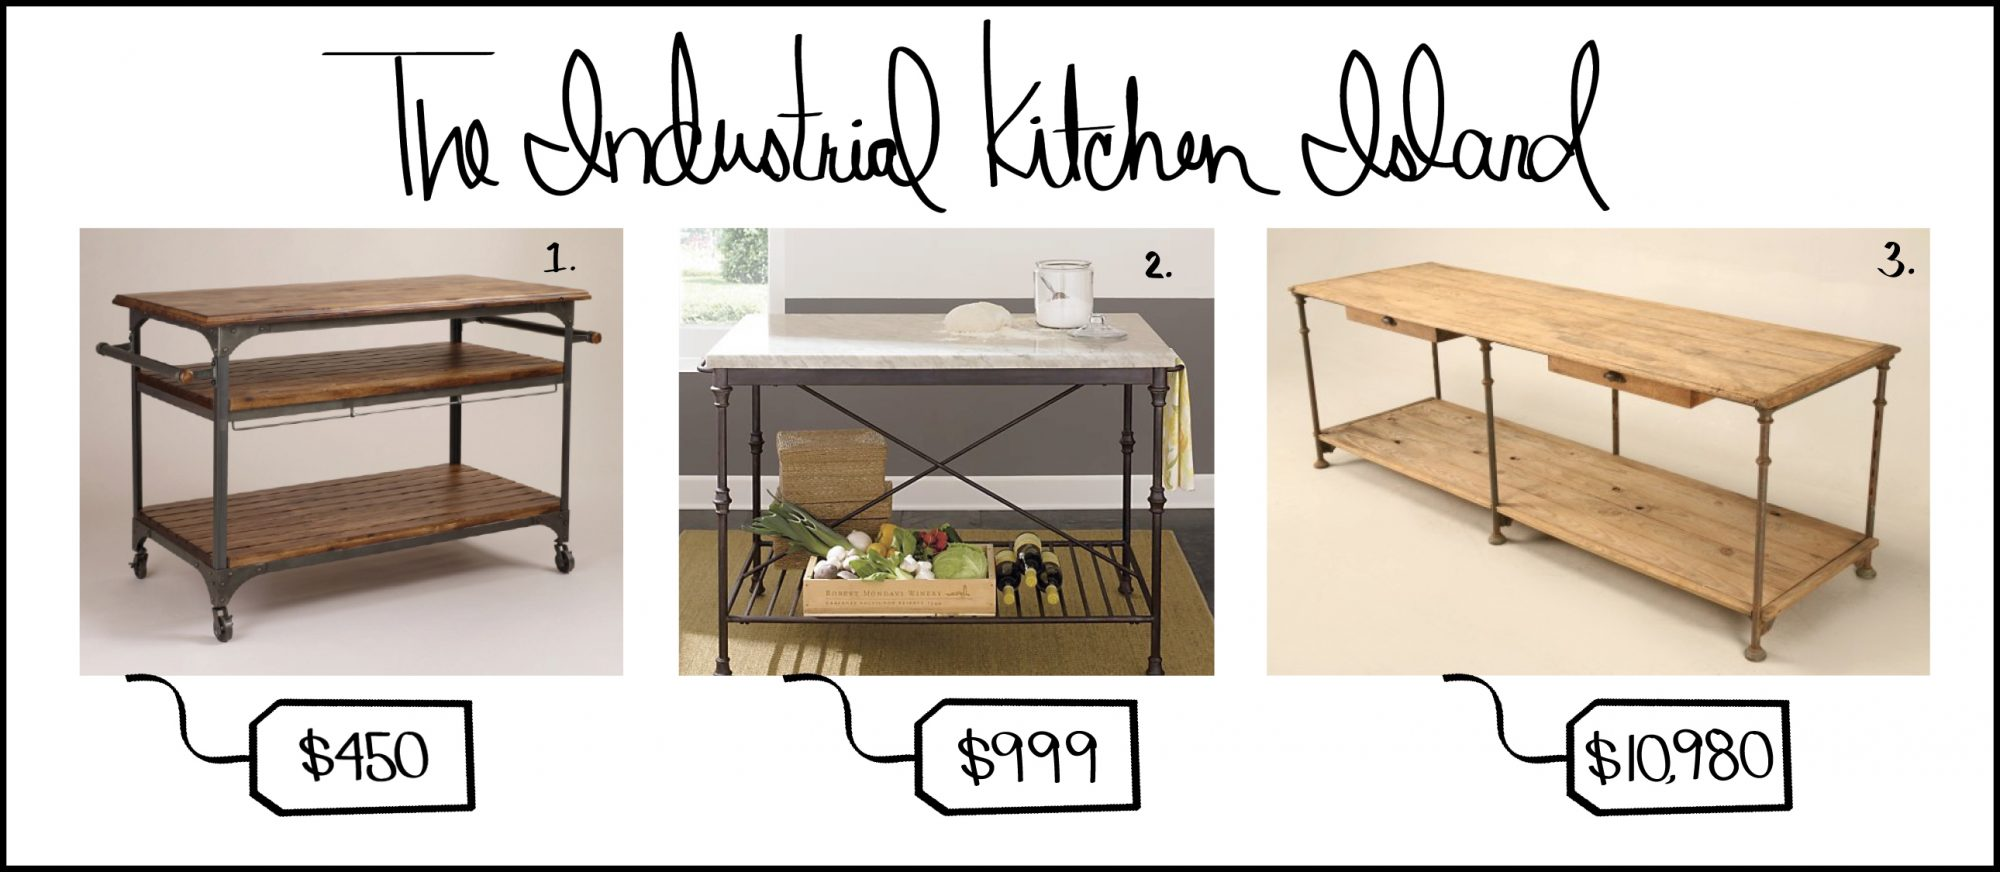 Steele This The Industrial Kitchen Island Southern Living